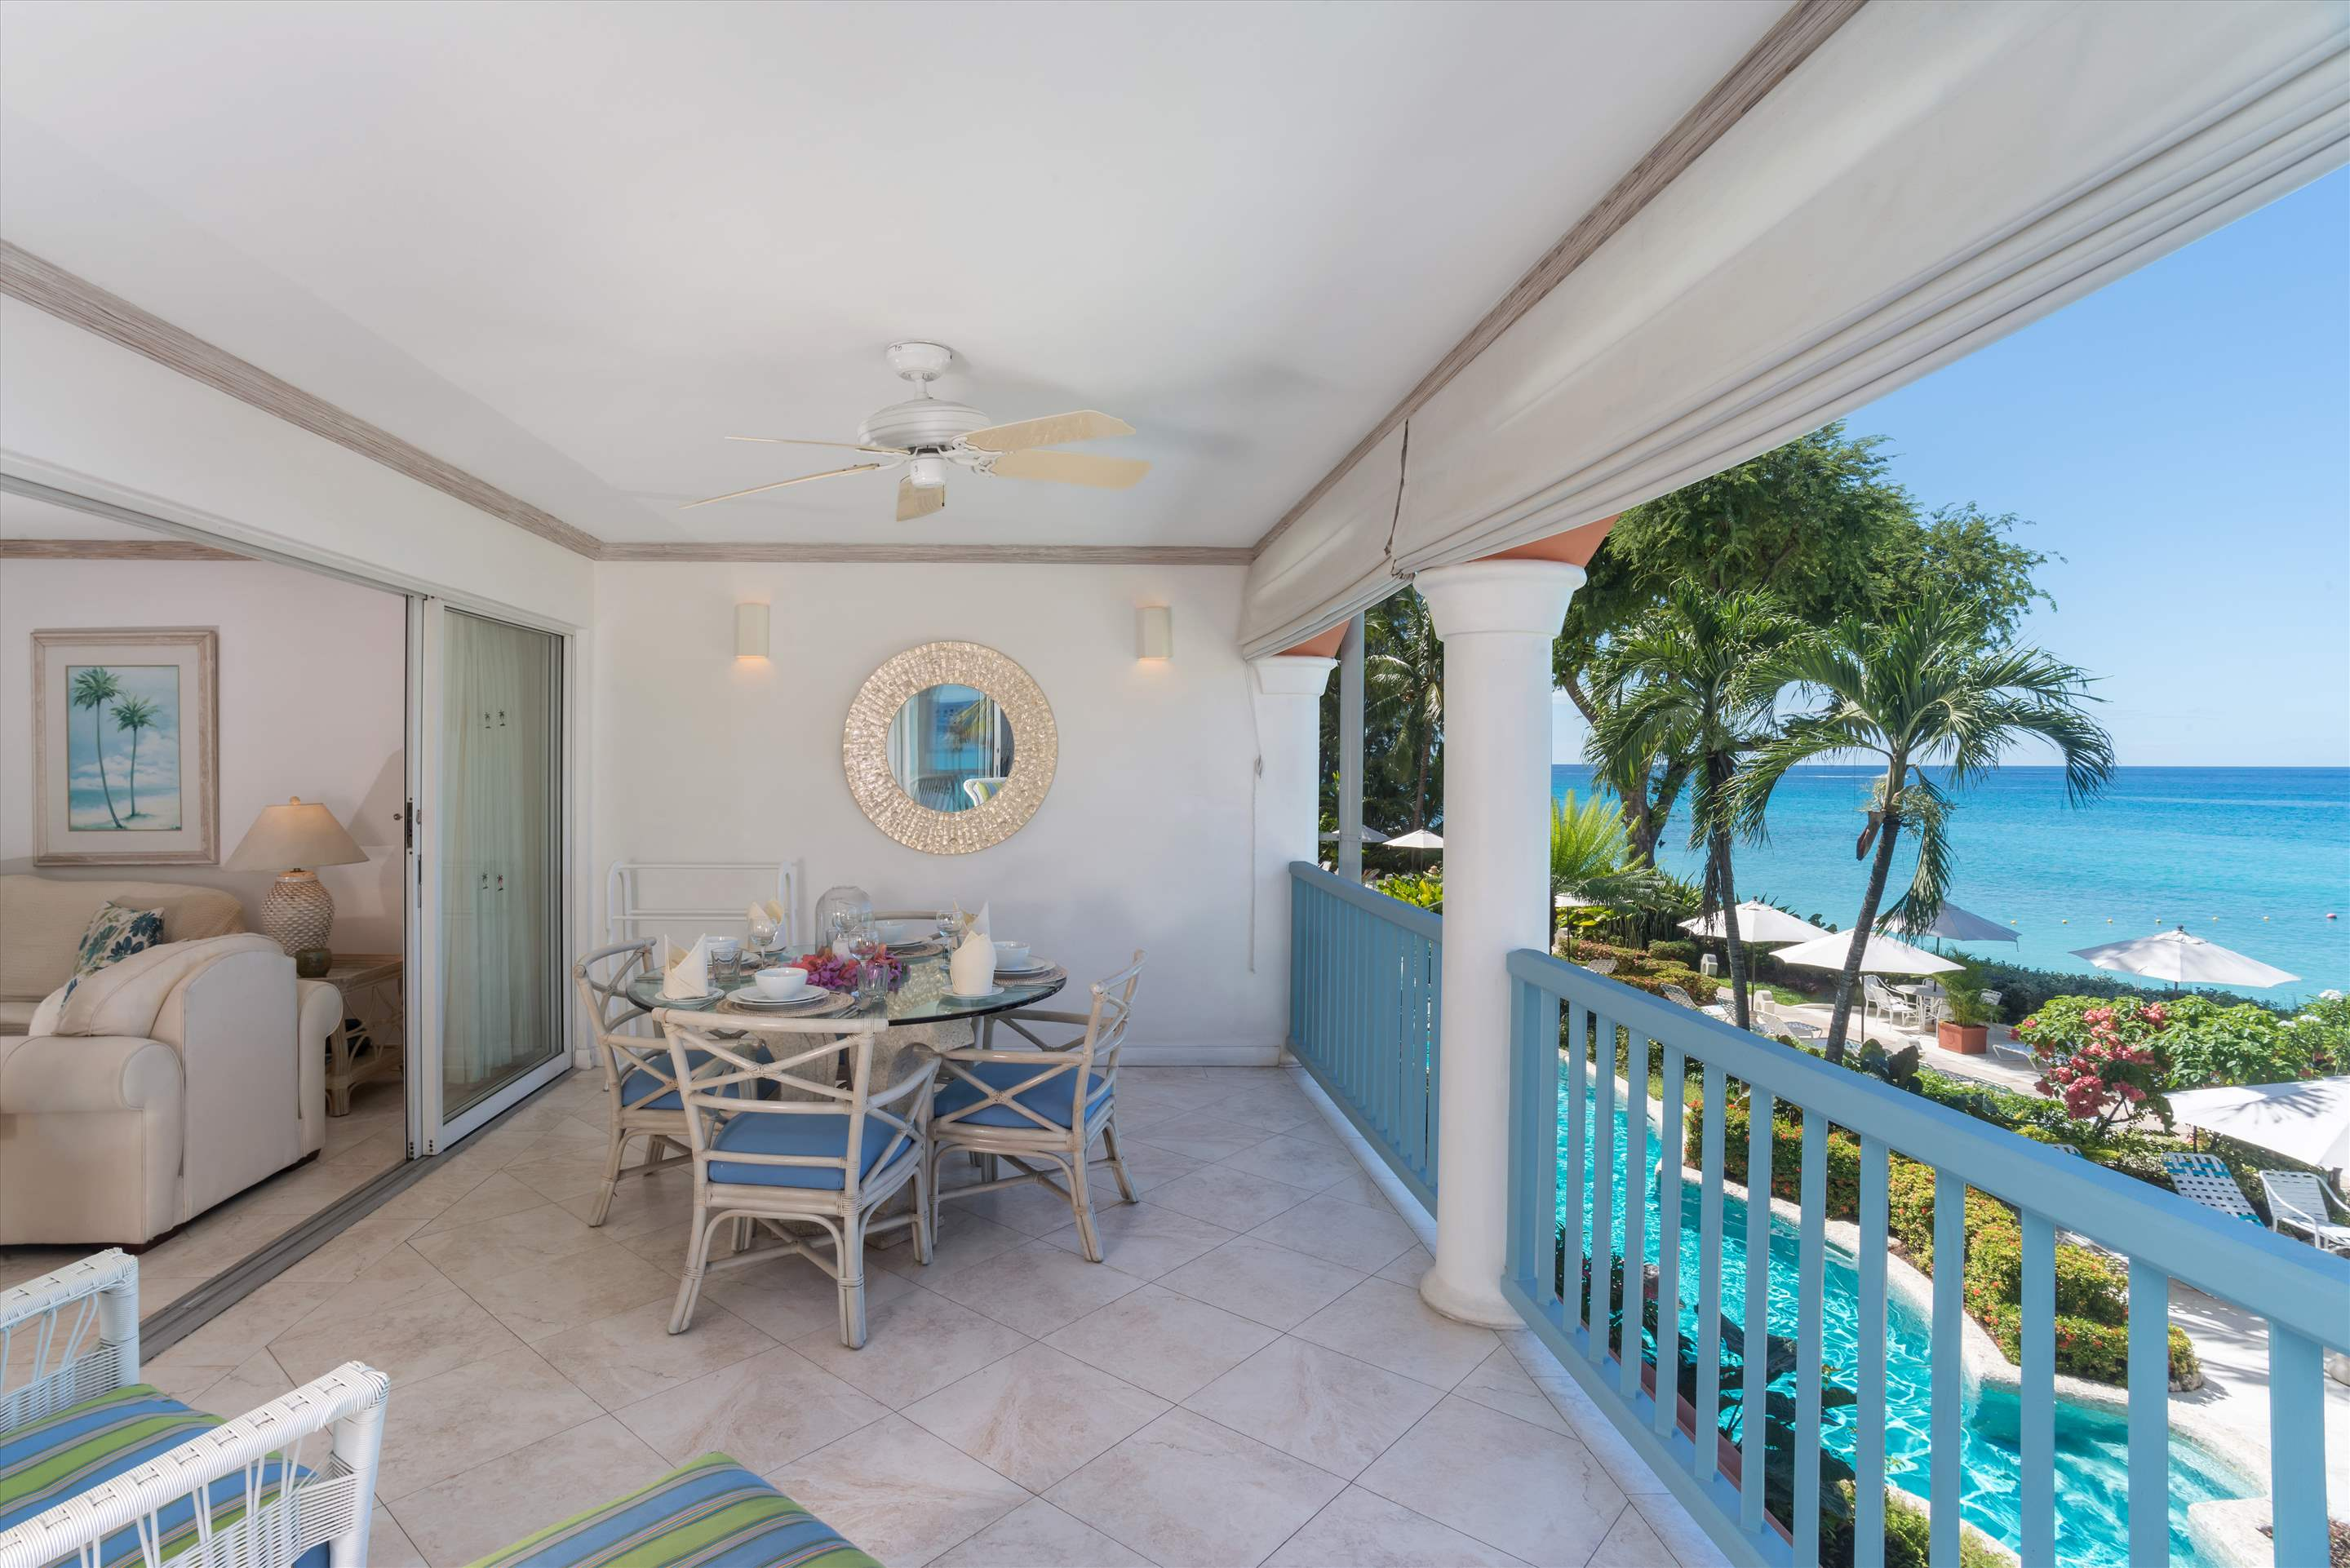 Villas on the Beach 205, 2 bedroom, 2 bedroom apartment in St. James & West Coast, Barbados Photo #4